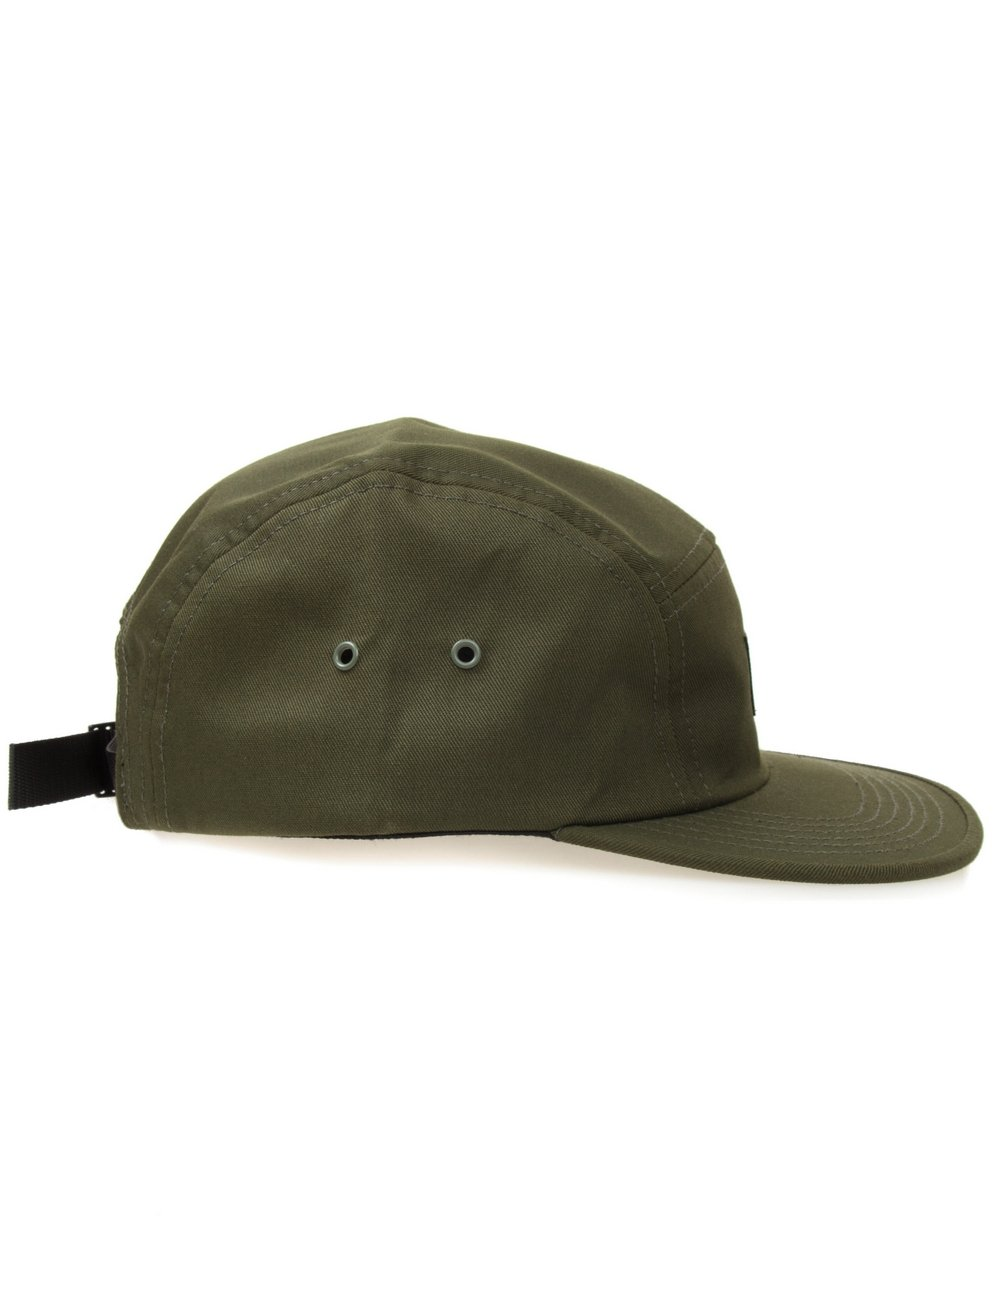 Hat shop raised by wolves algonquin 5 panel hat olive drab twill